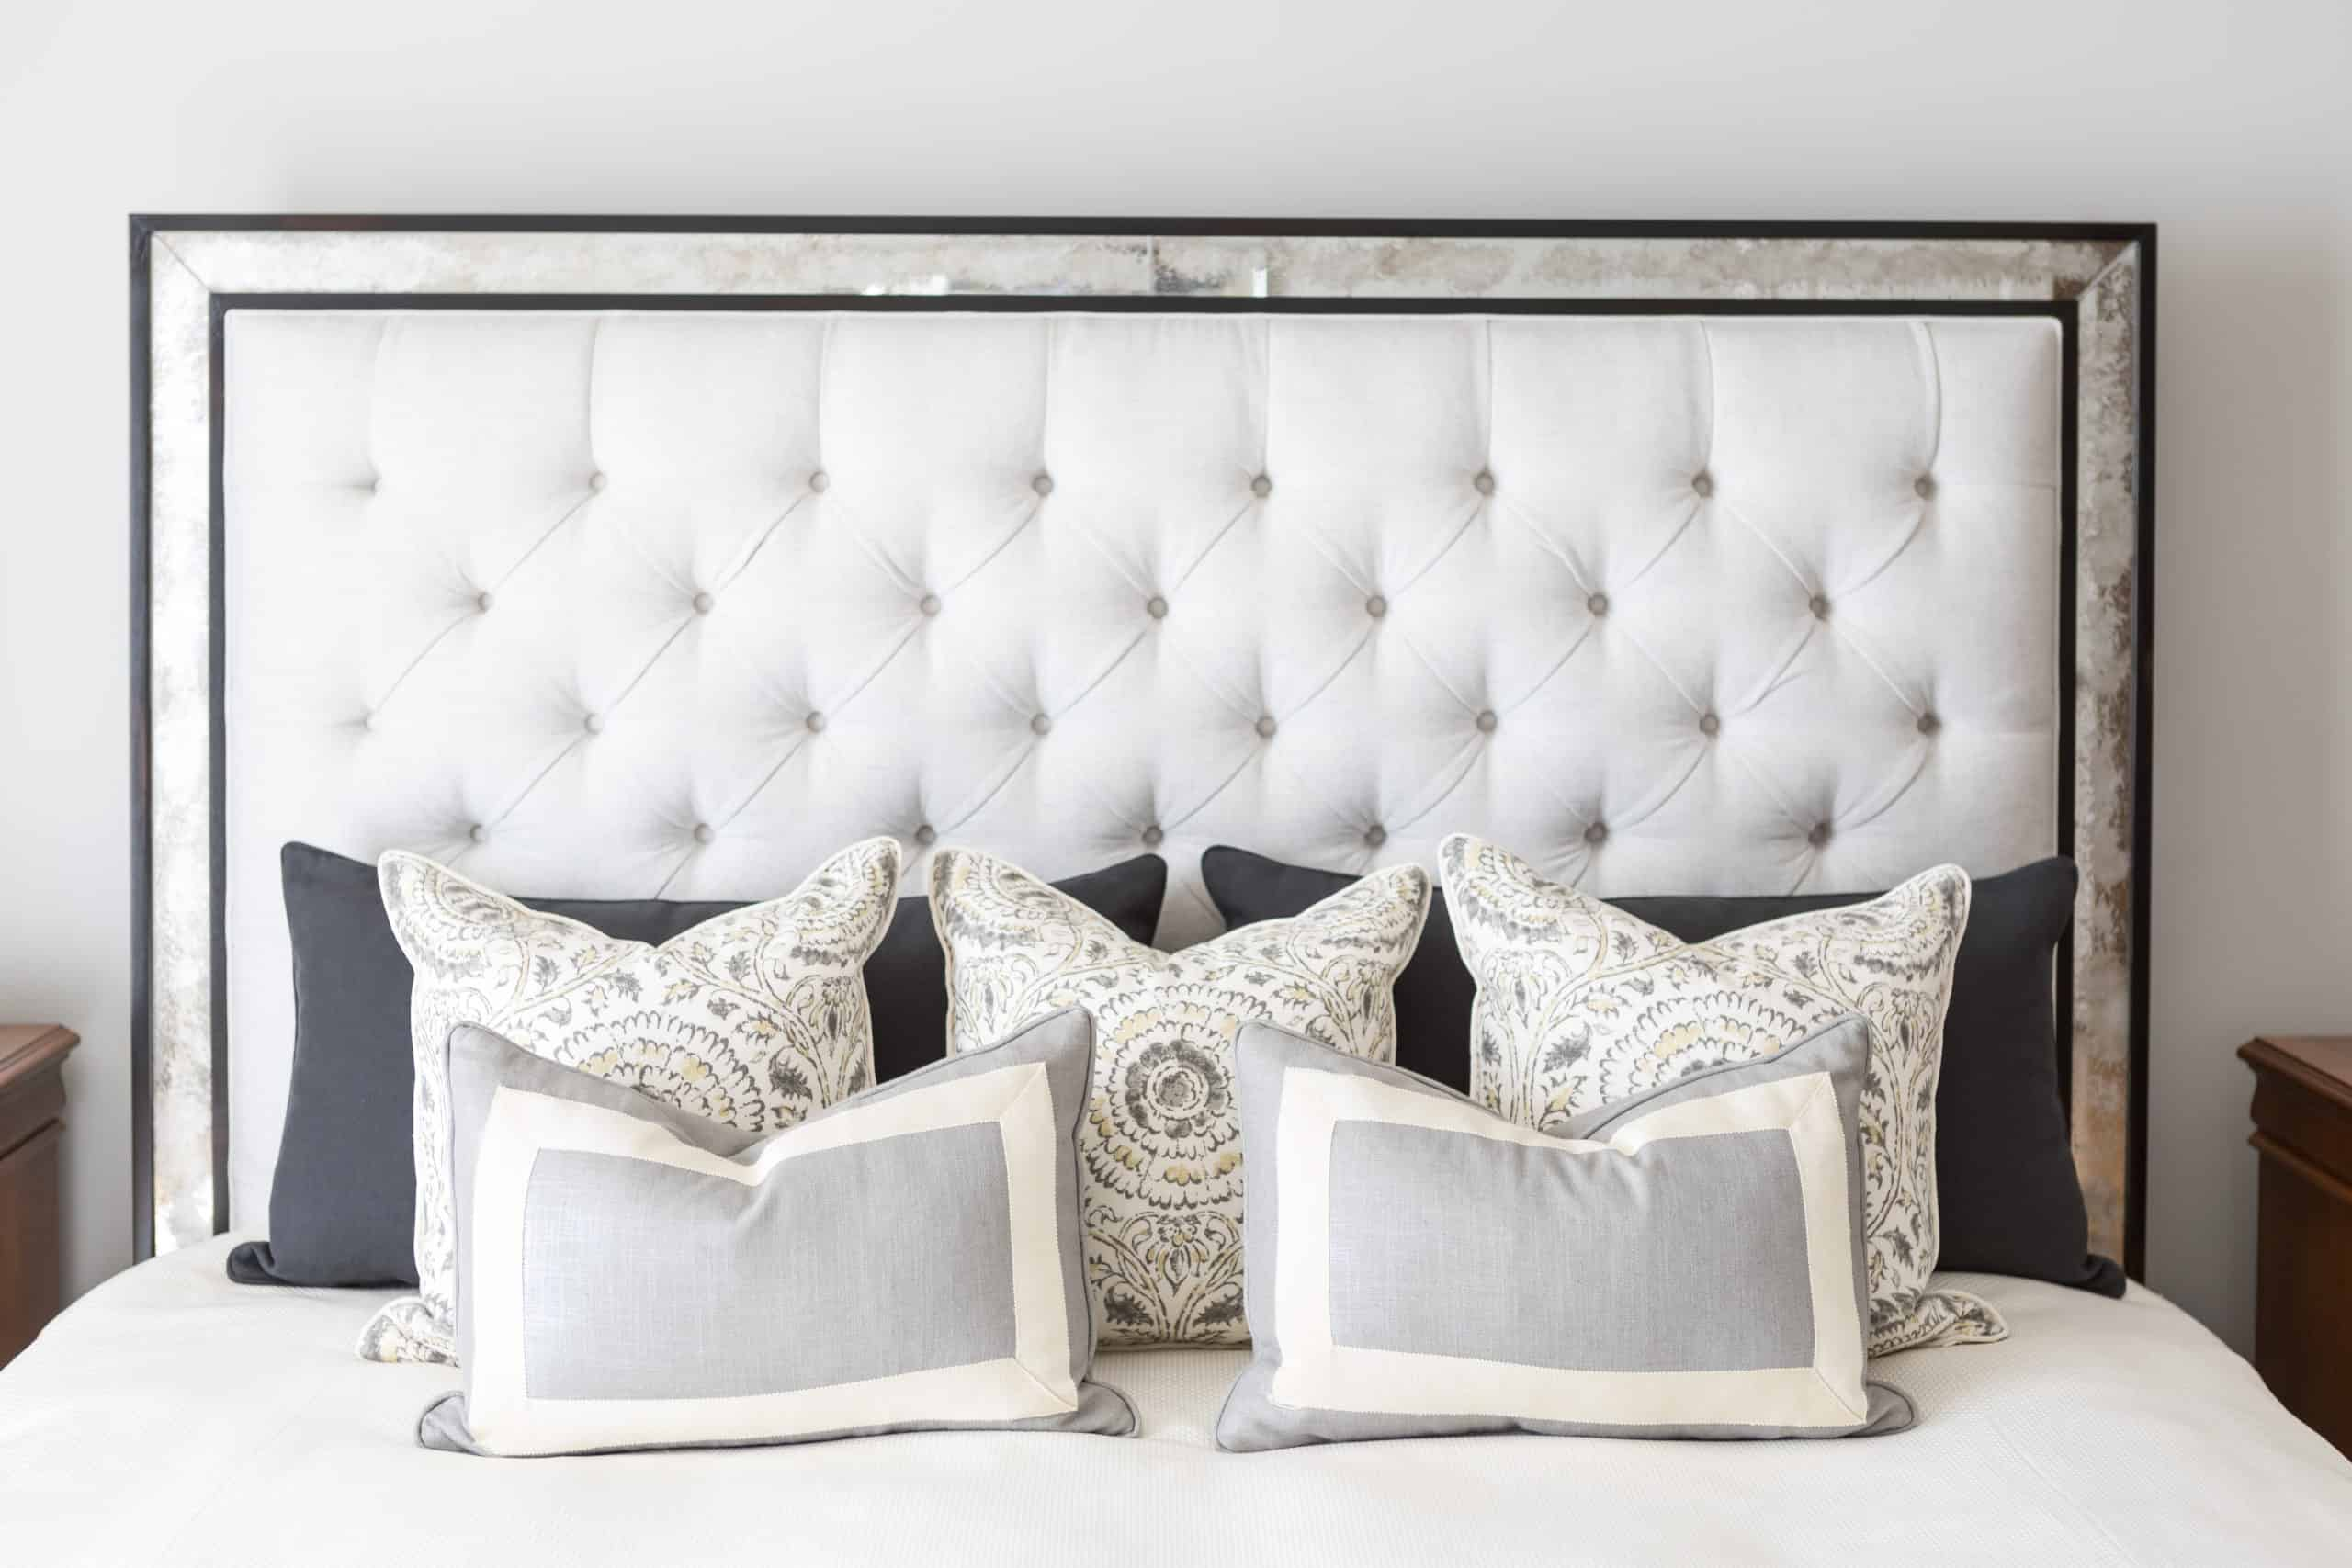 Array of patterned pillows on a bright white bed